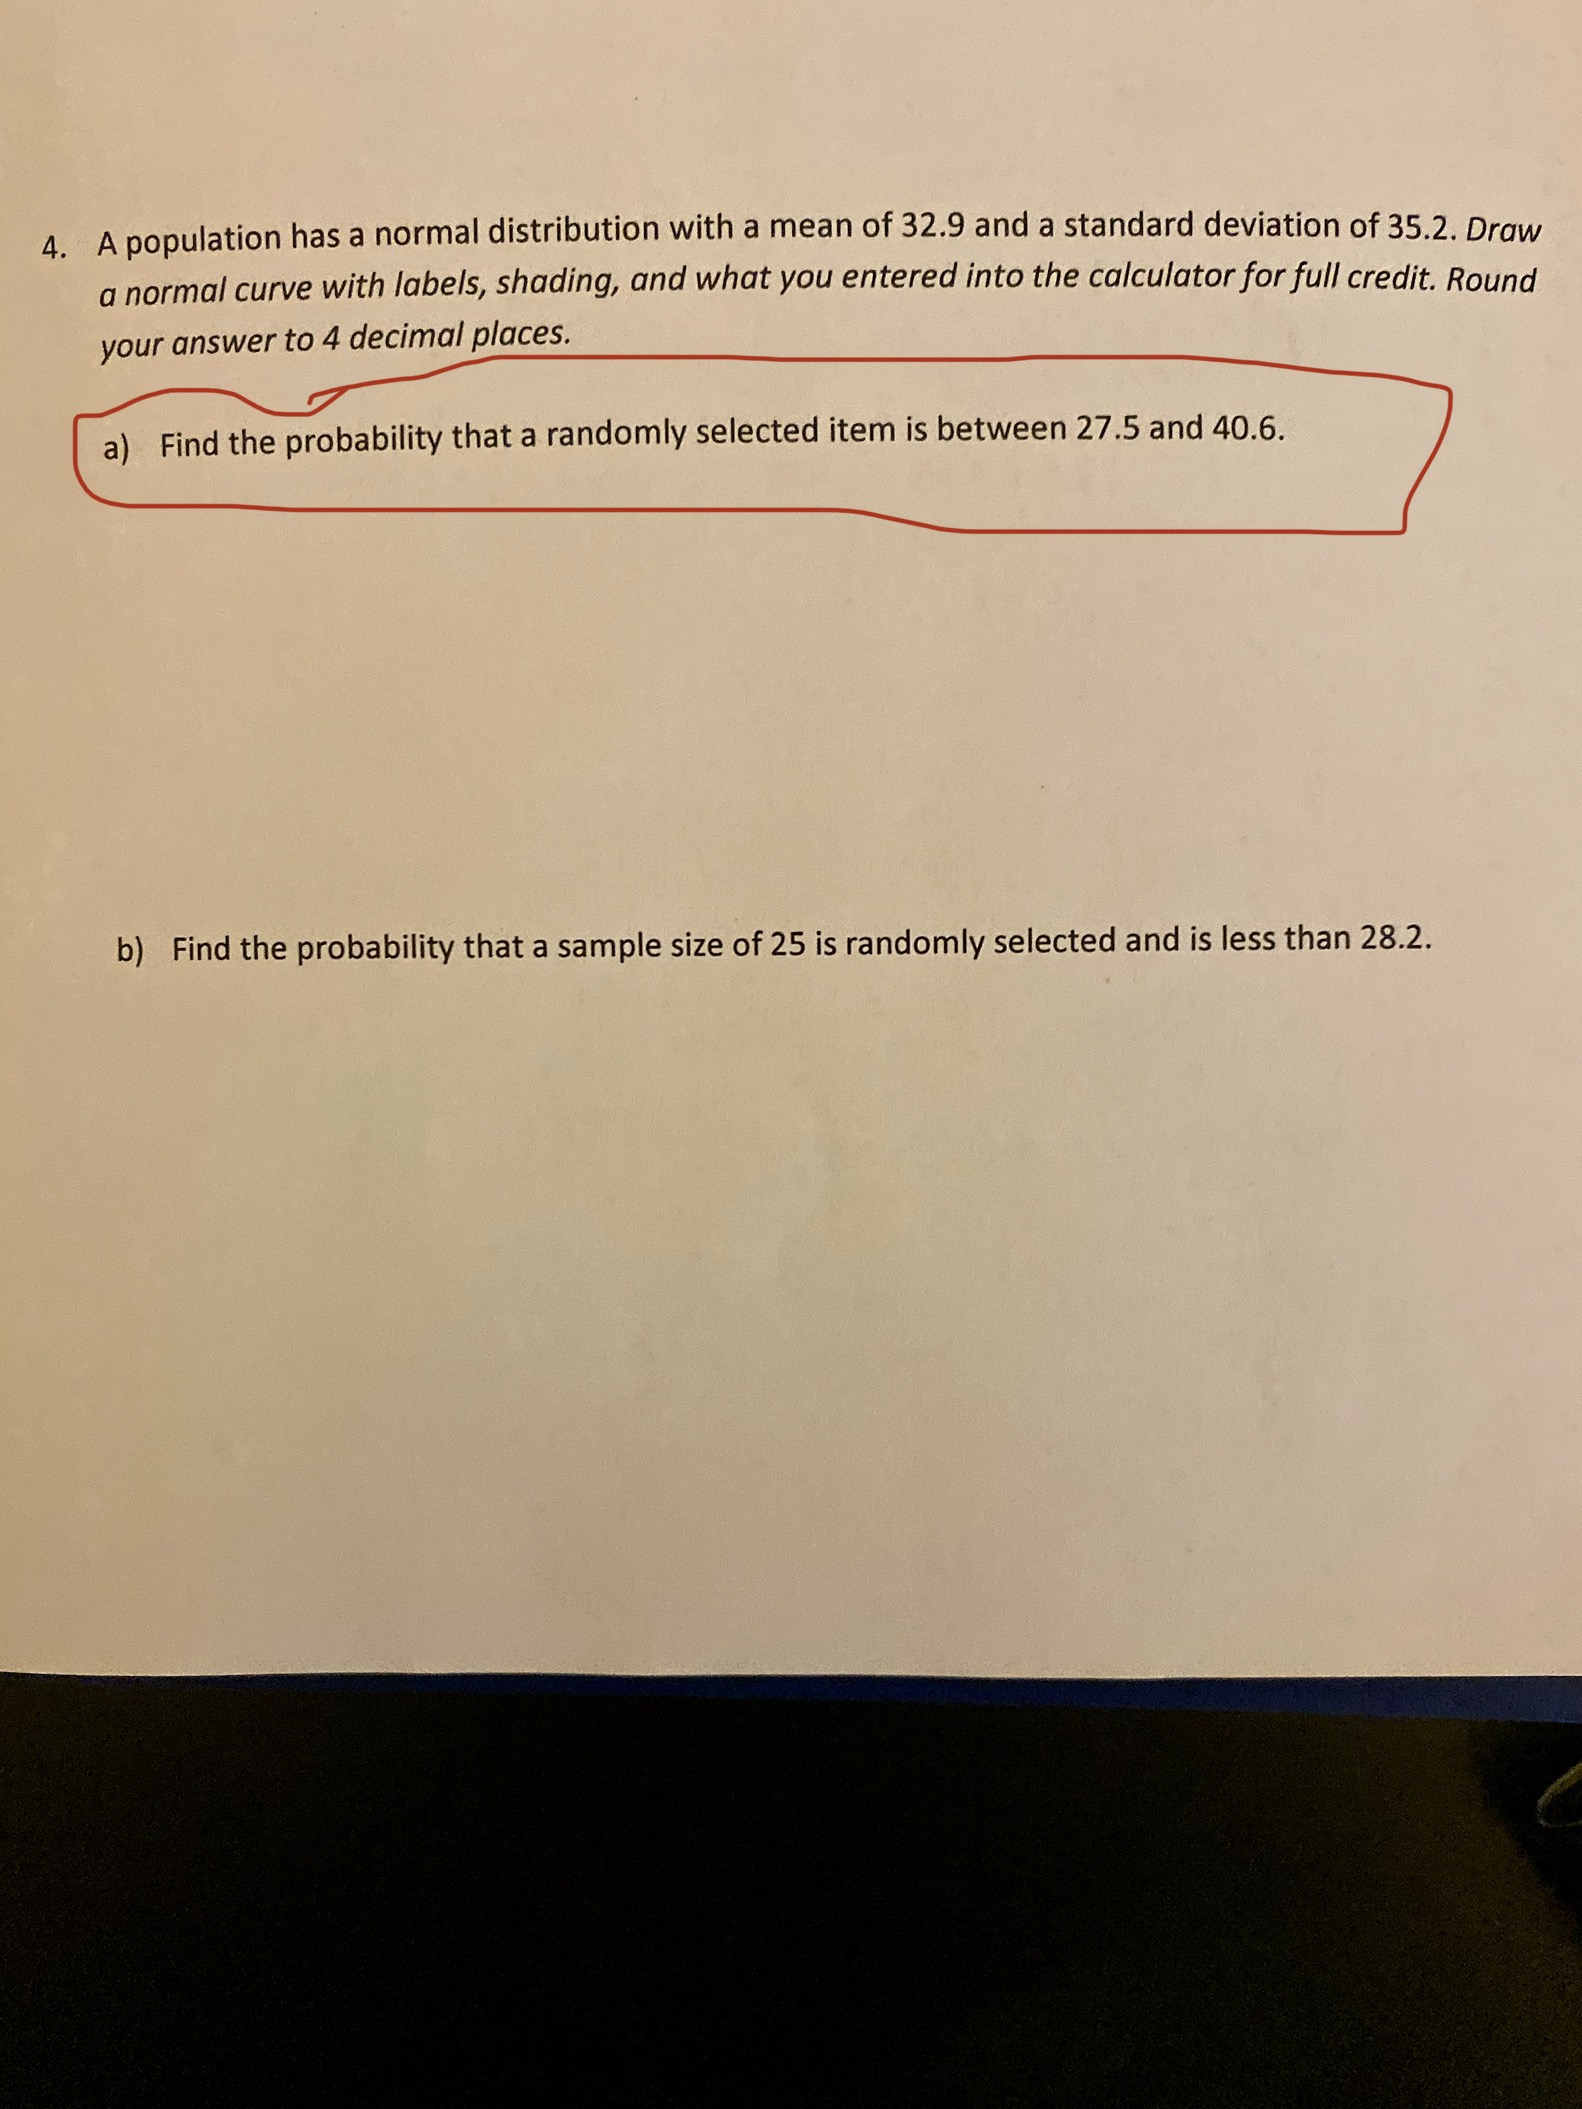 4. A population has a normal distribution with a mean of 32.9 and a standard deviation of 35.2. Draw a normal curve with labels, shading, and what you entered into the calculator for full credit. Round your answer to 4 decimal places. Find the probability that a randomly selected item is between 27.5 and 40.6 a) b) Find the probability that a sample size of 25 is randomly selected and is less than 28.2.